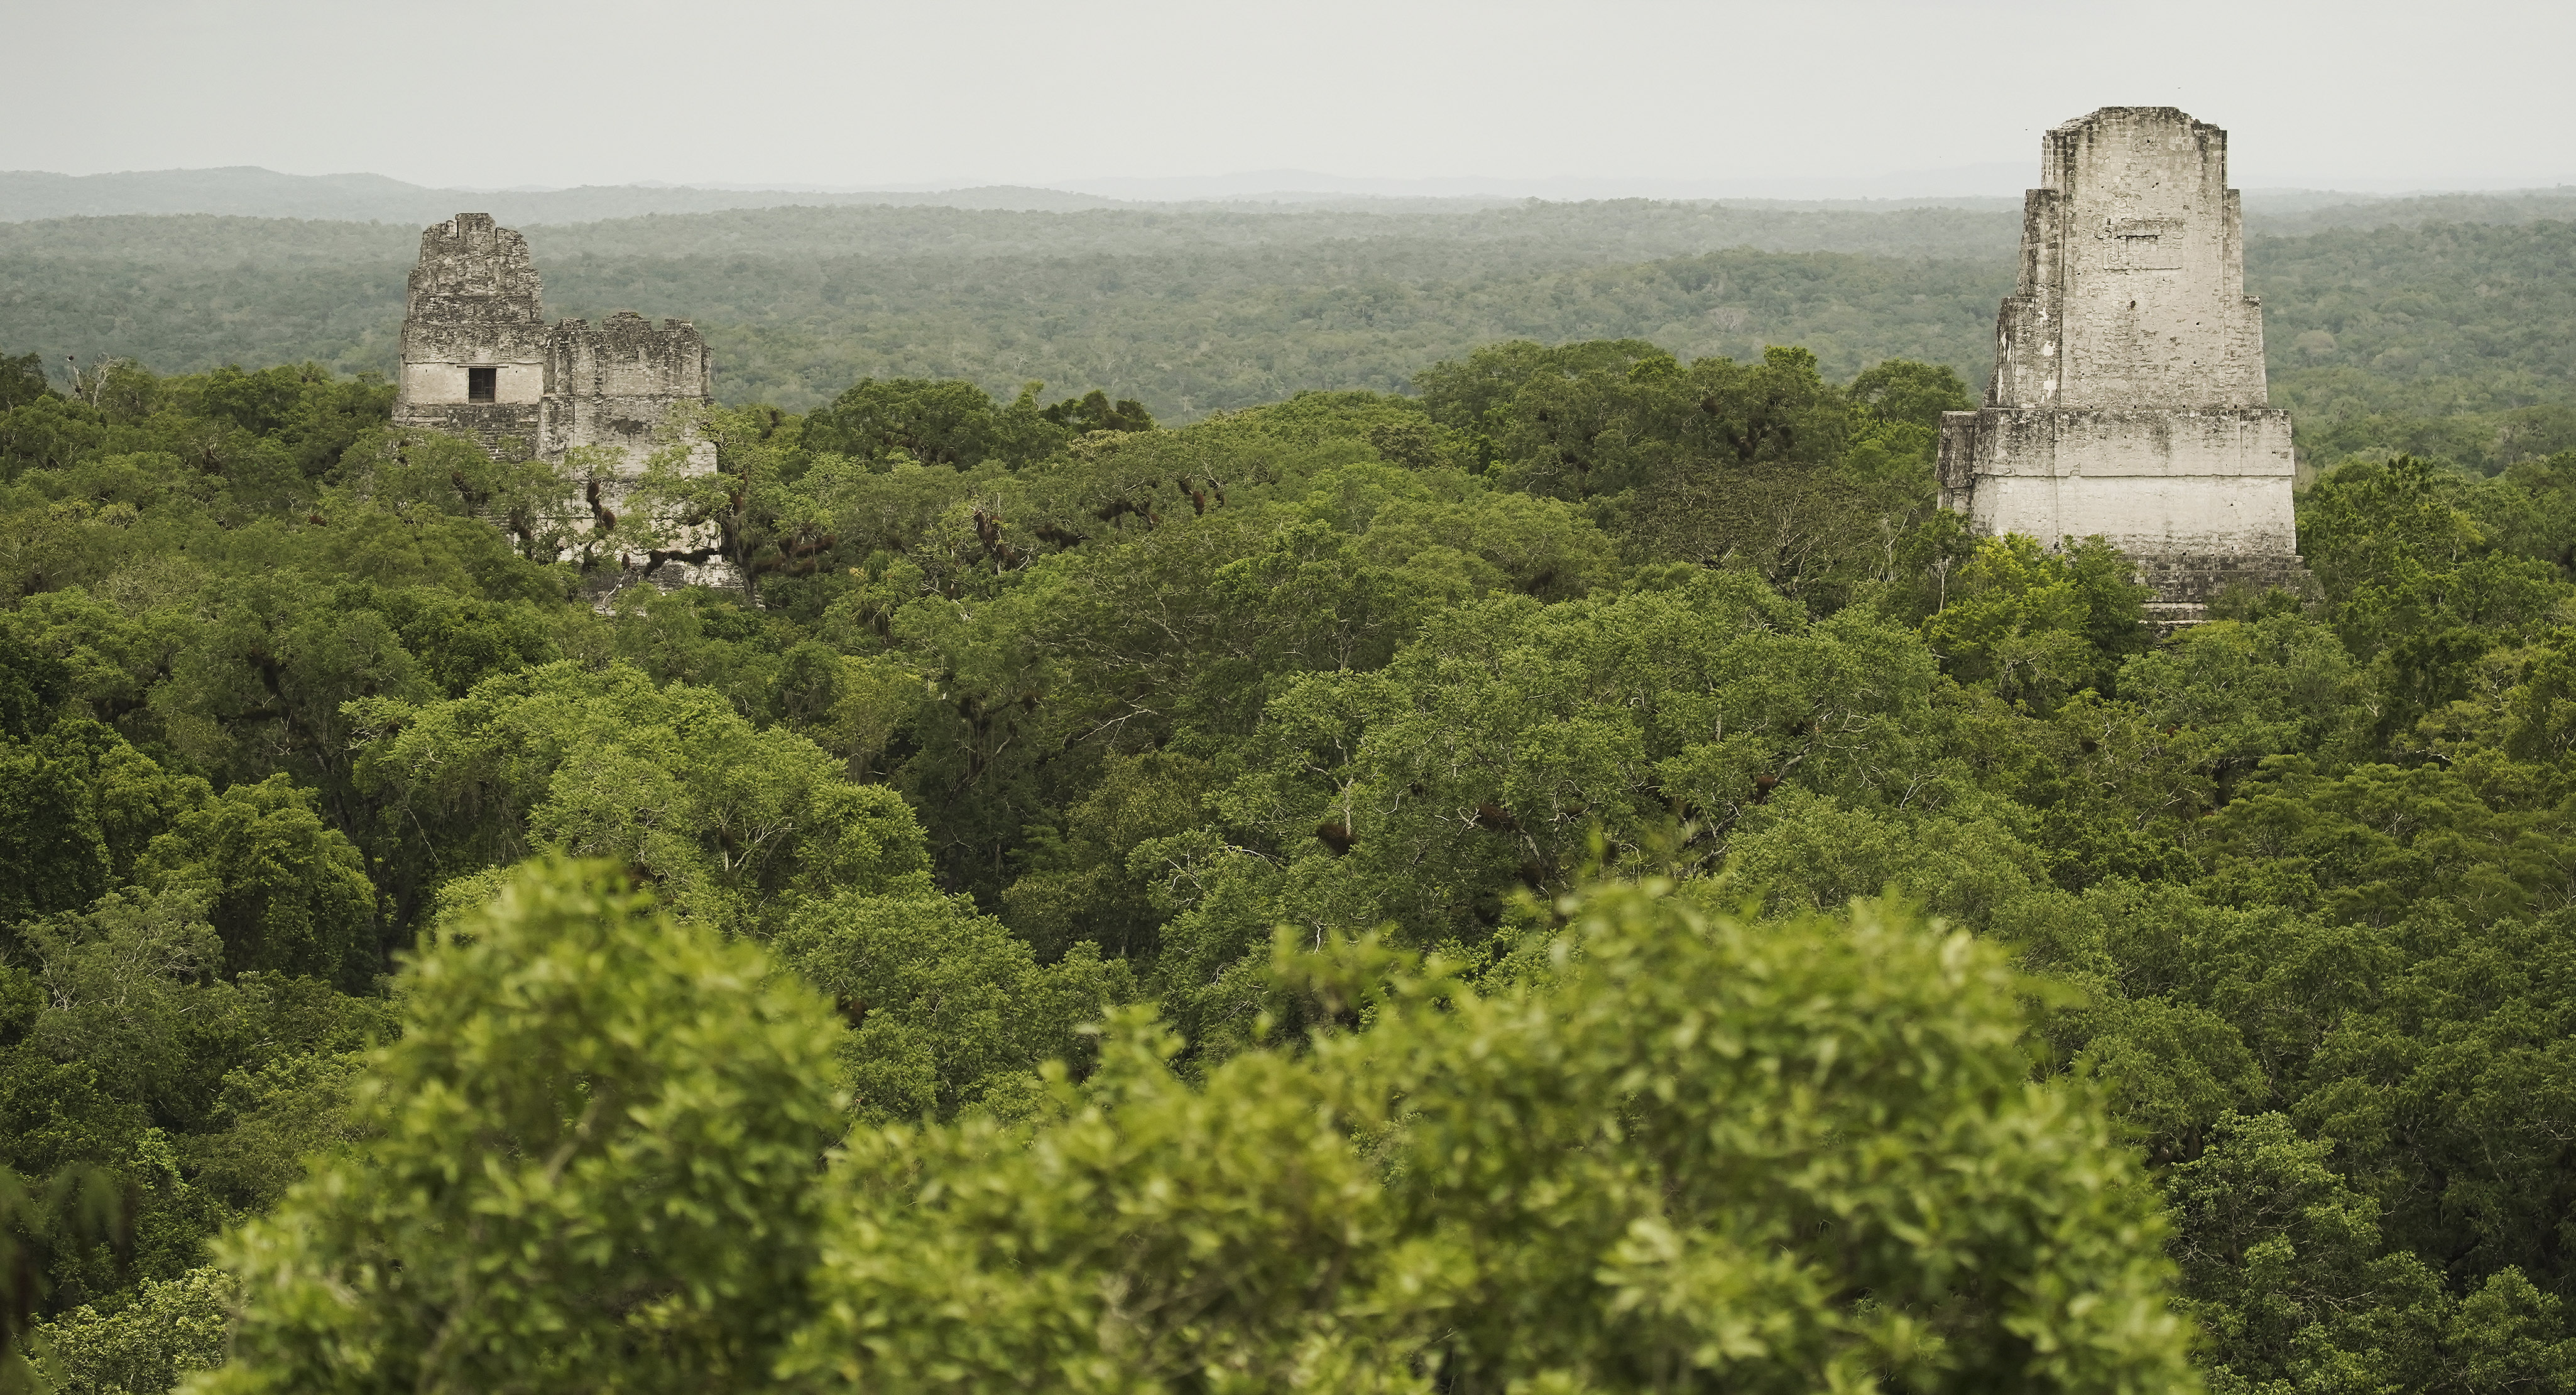 Mayan temples I, II, and III are surrounded by forest in Tikal, Guatemala, on Thursday, Aug. 22, 2019. President Russell M. Nelson of The Church of Jesus Christ of Latter-day Saints spoke in a devotional in Guatemala City on Saturday, Aug. 24.